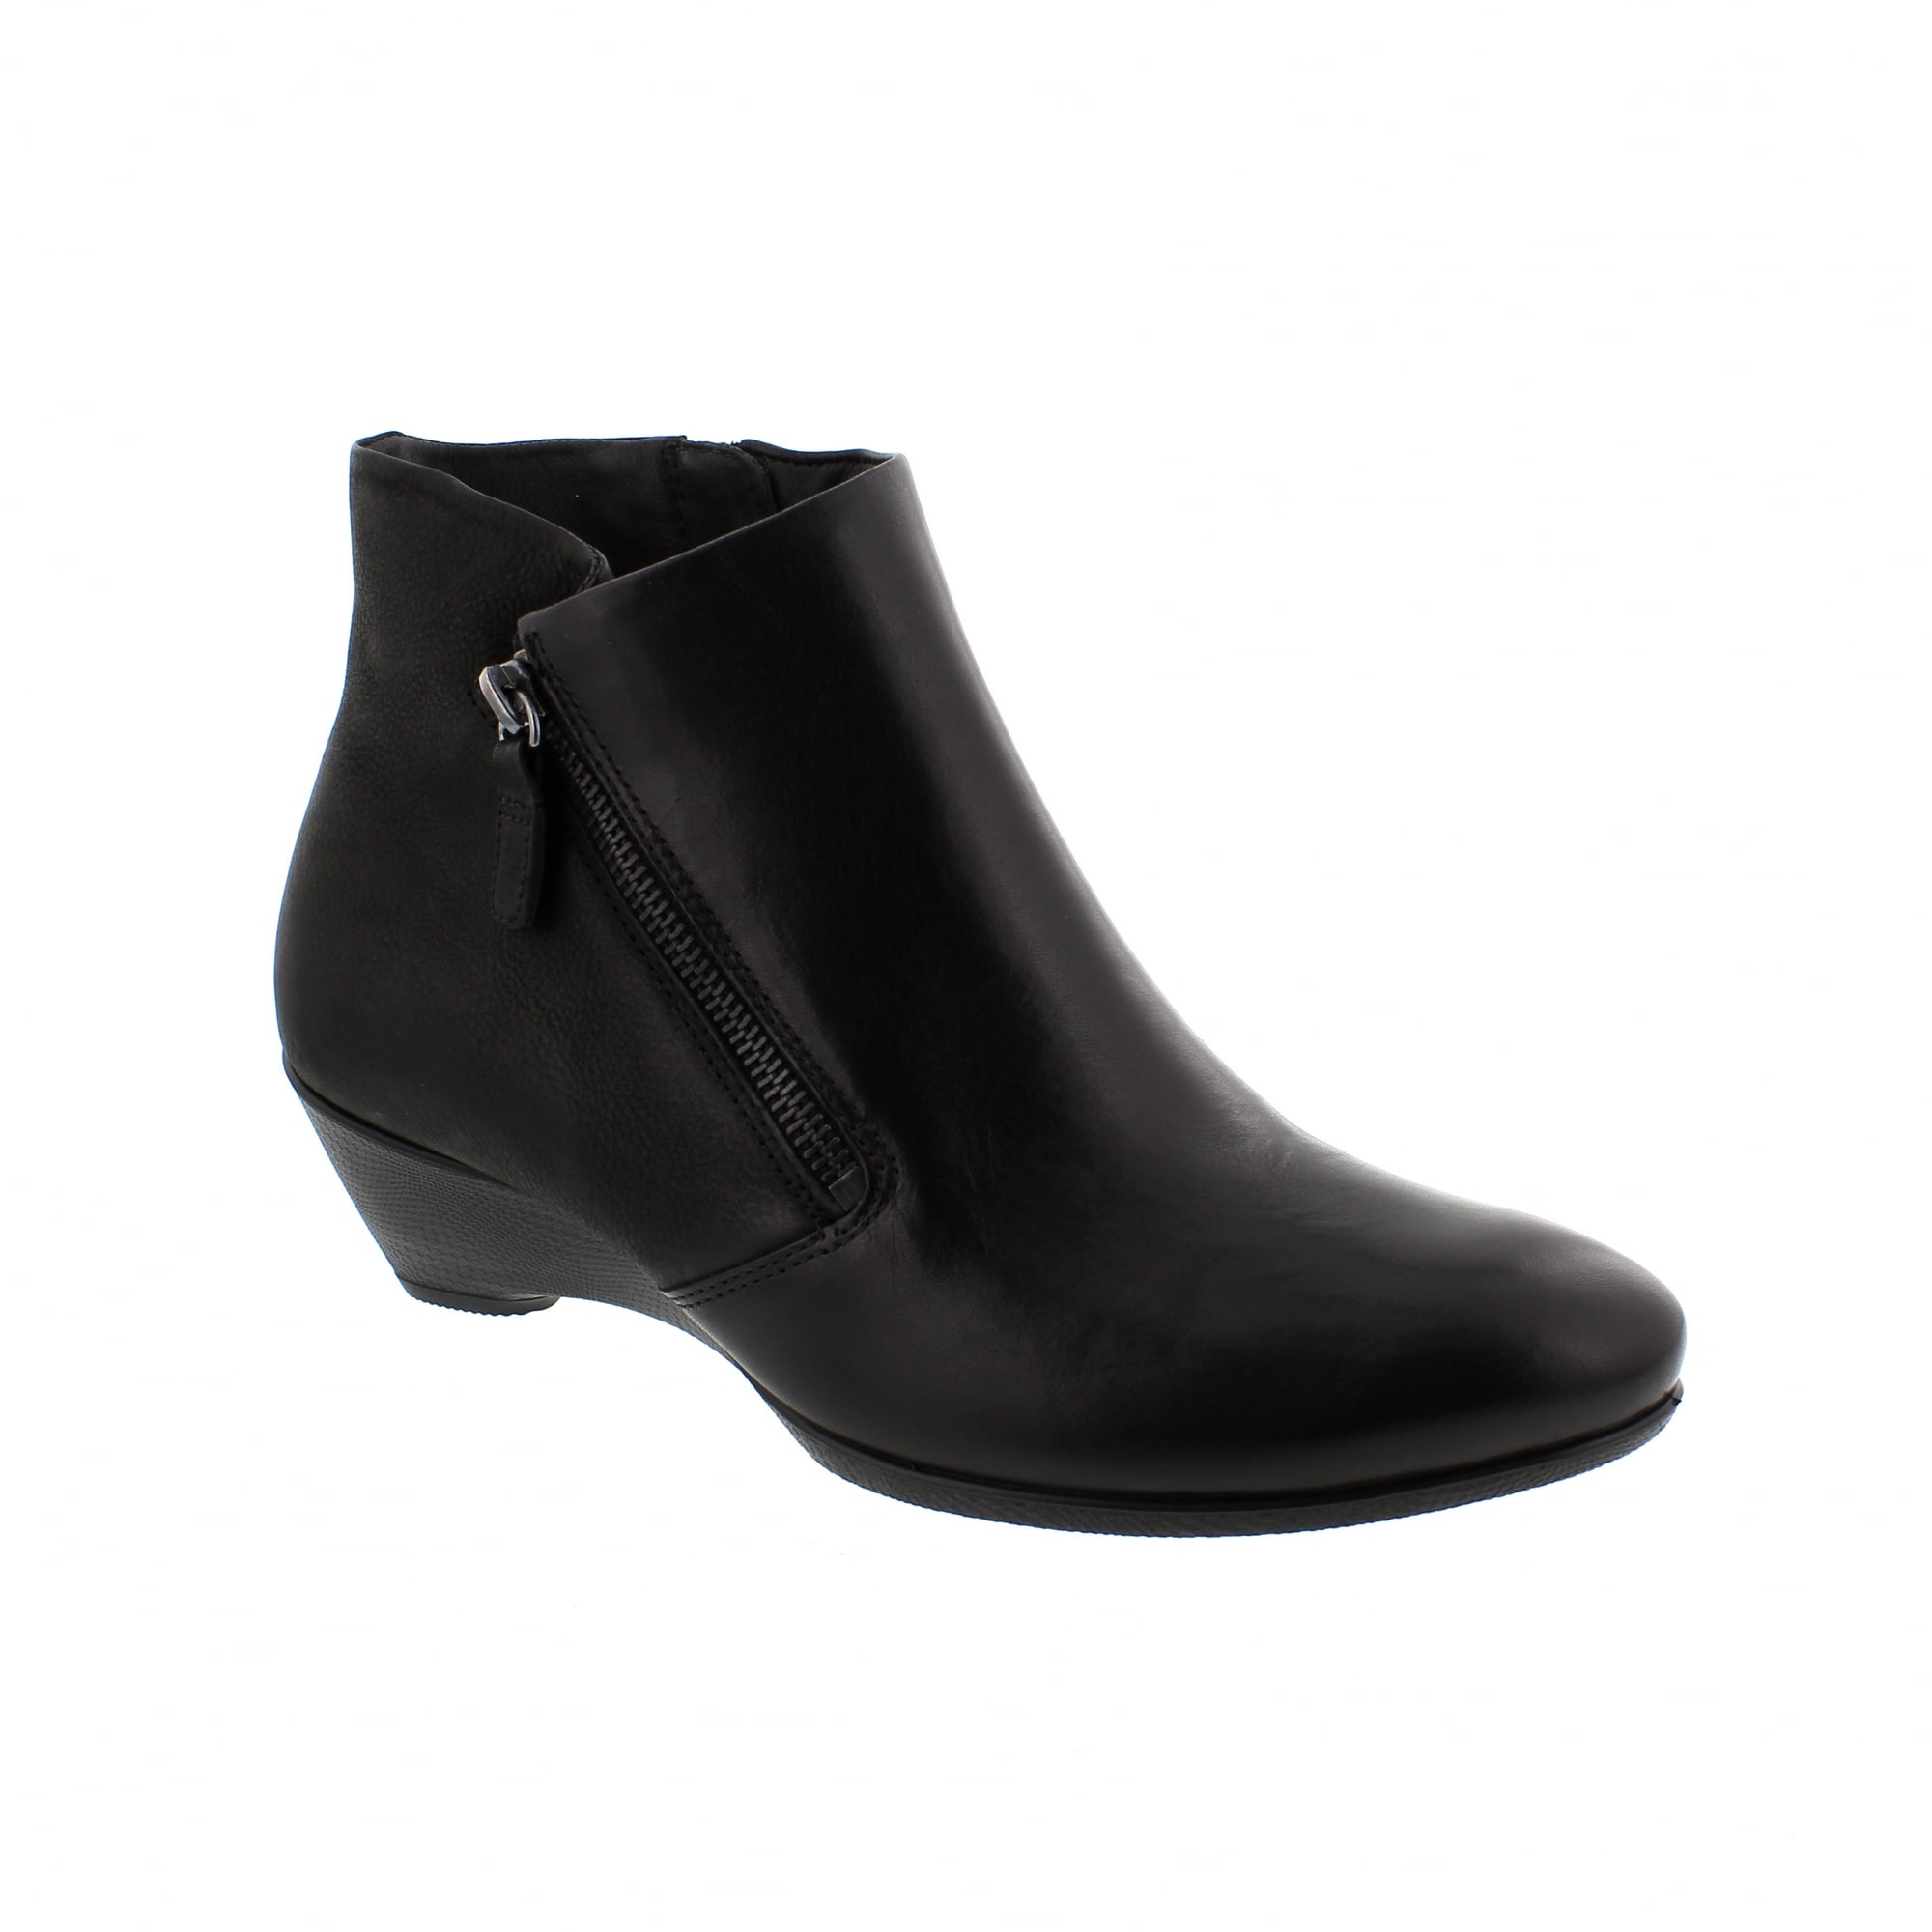 343c0d5585e1b Ecco Sculptured 45   270043-51052 - Womens from Rogerson Shoes UK